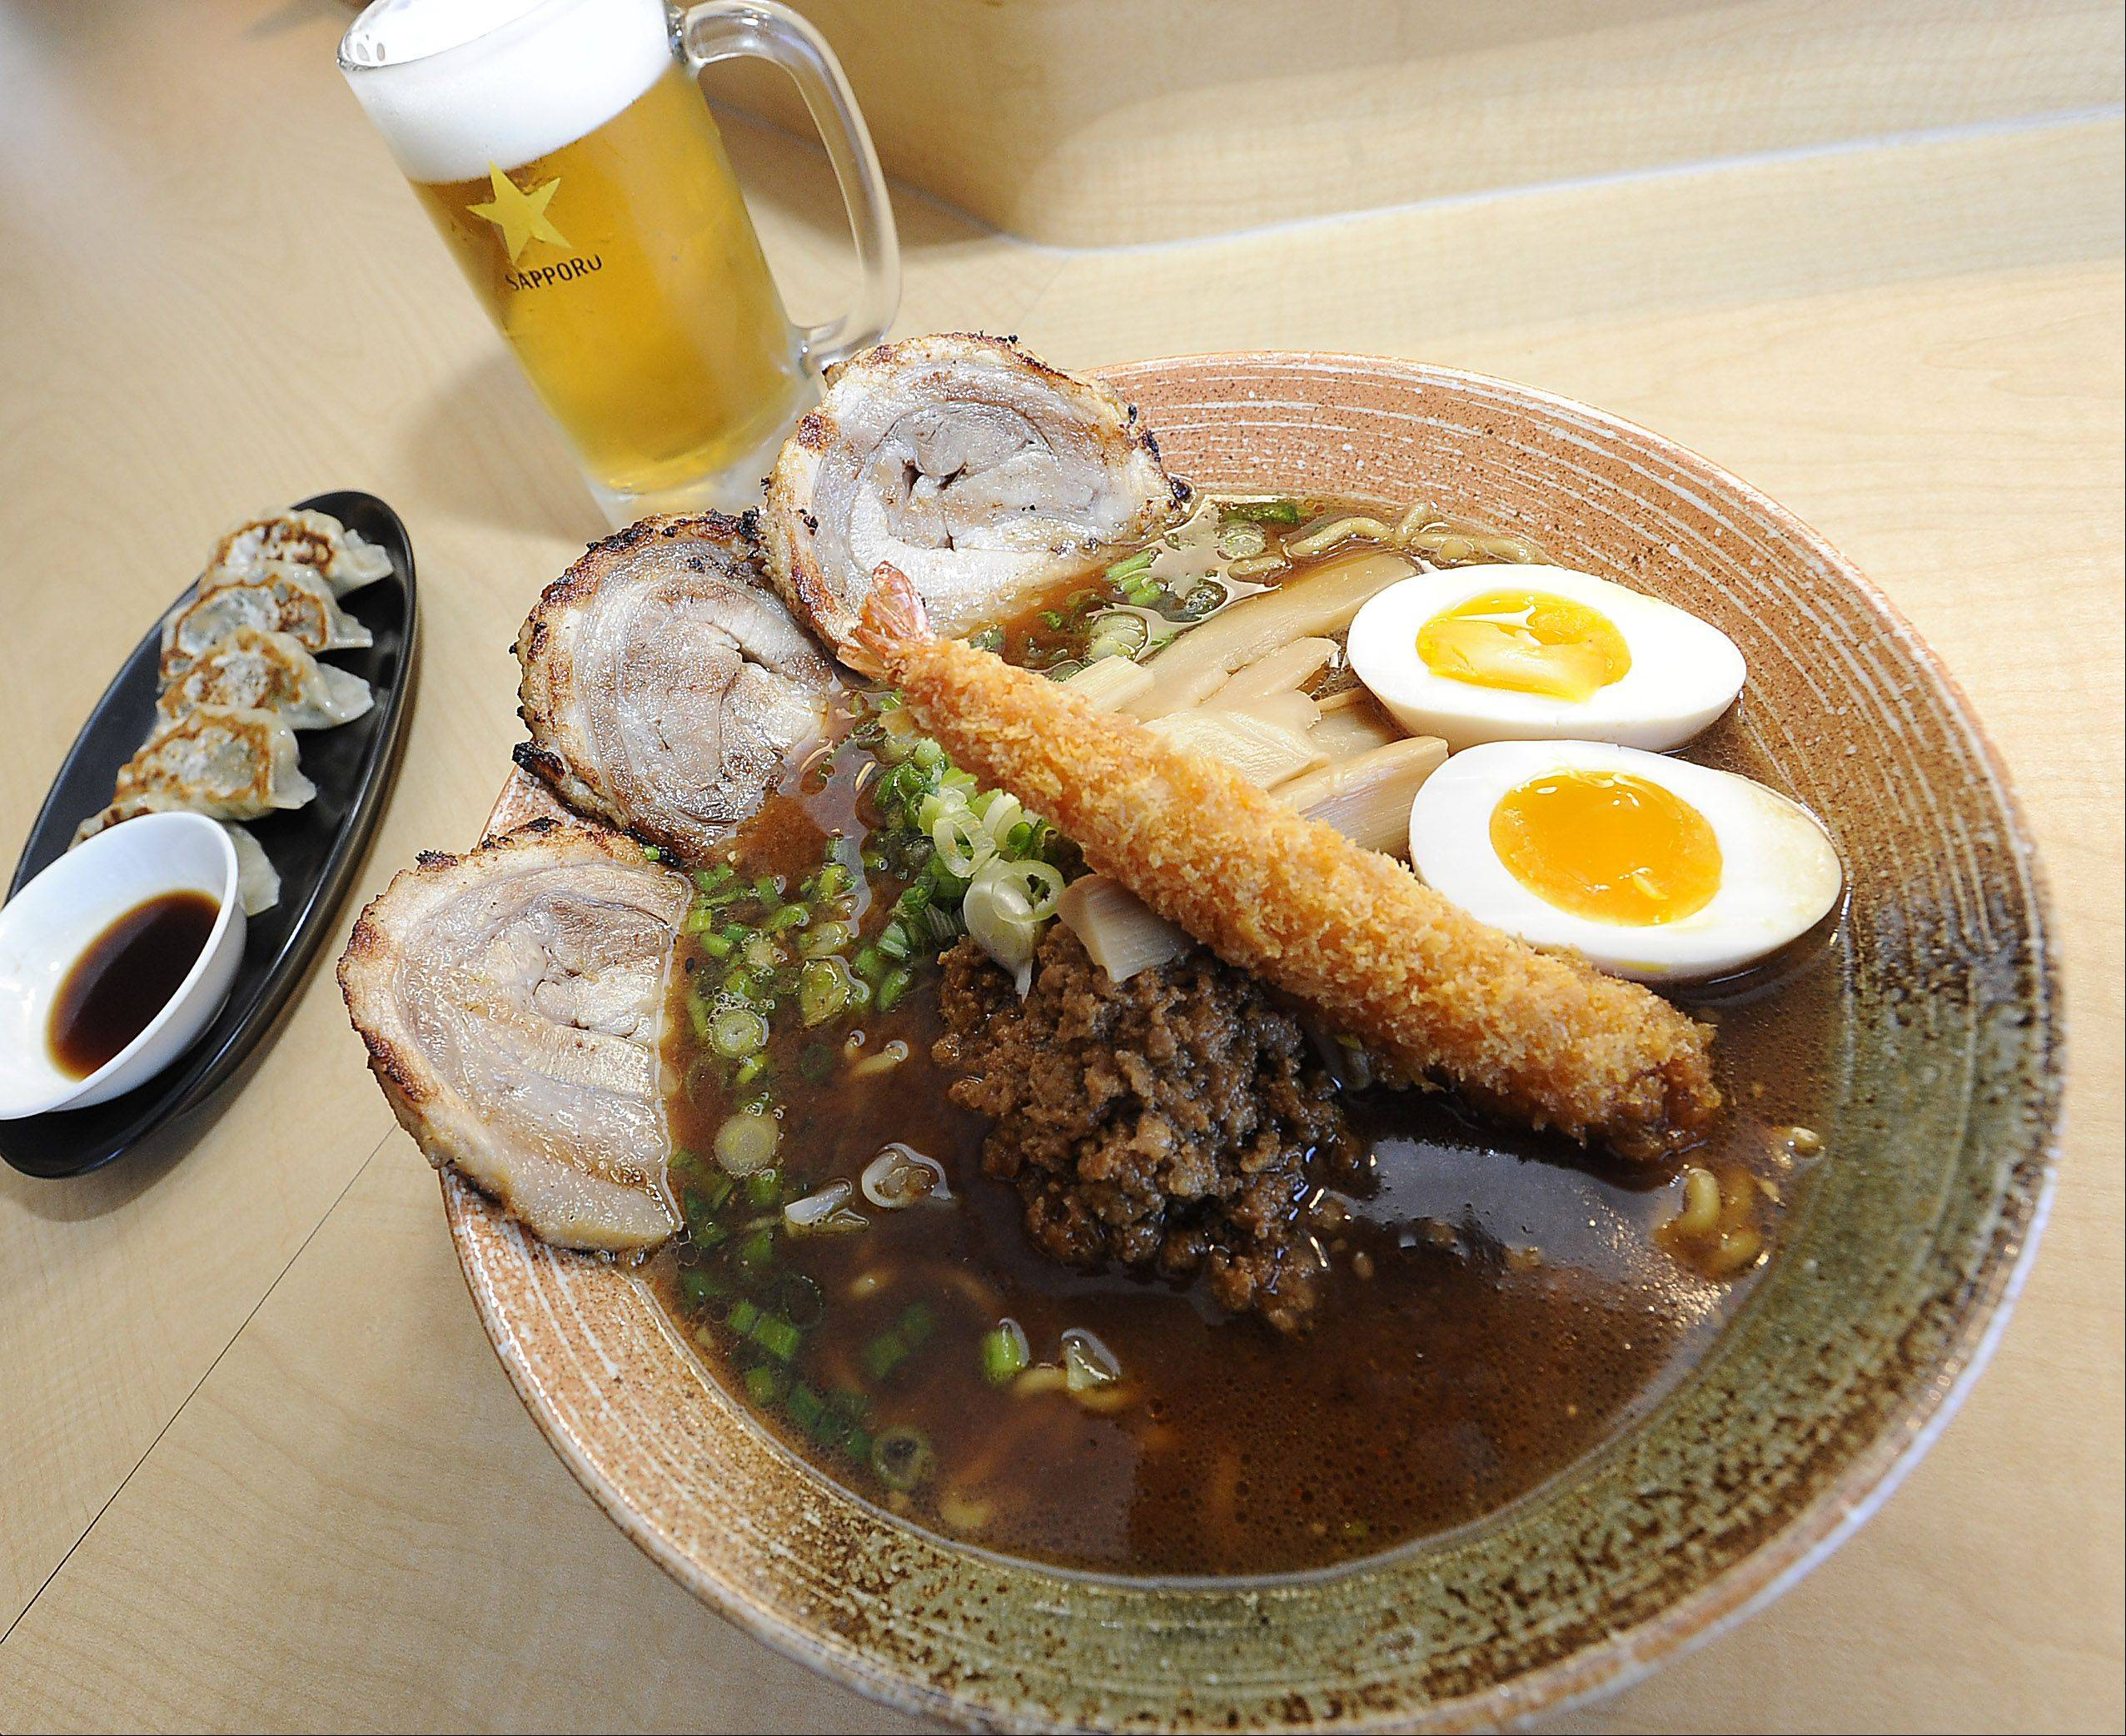 Ramen Misoya's Nagoya-style mame miso with egg gyoza brings people from far and wide to the little strip mall eatery in Mount Prospect.